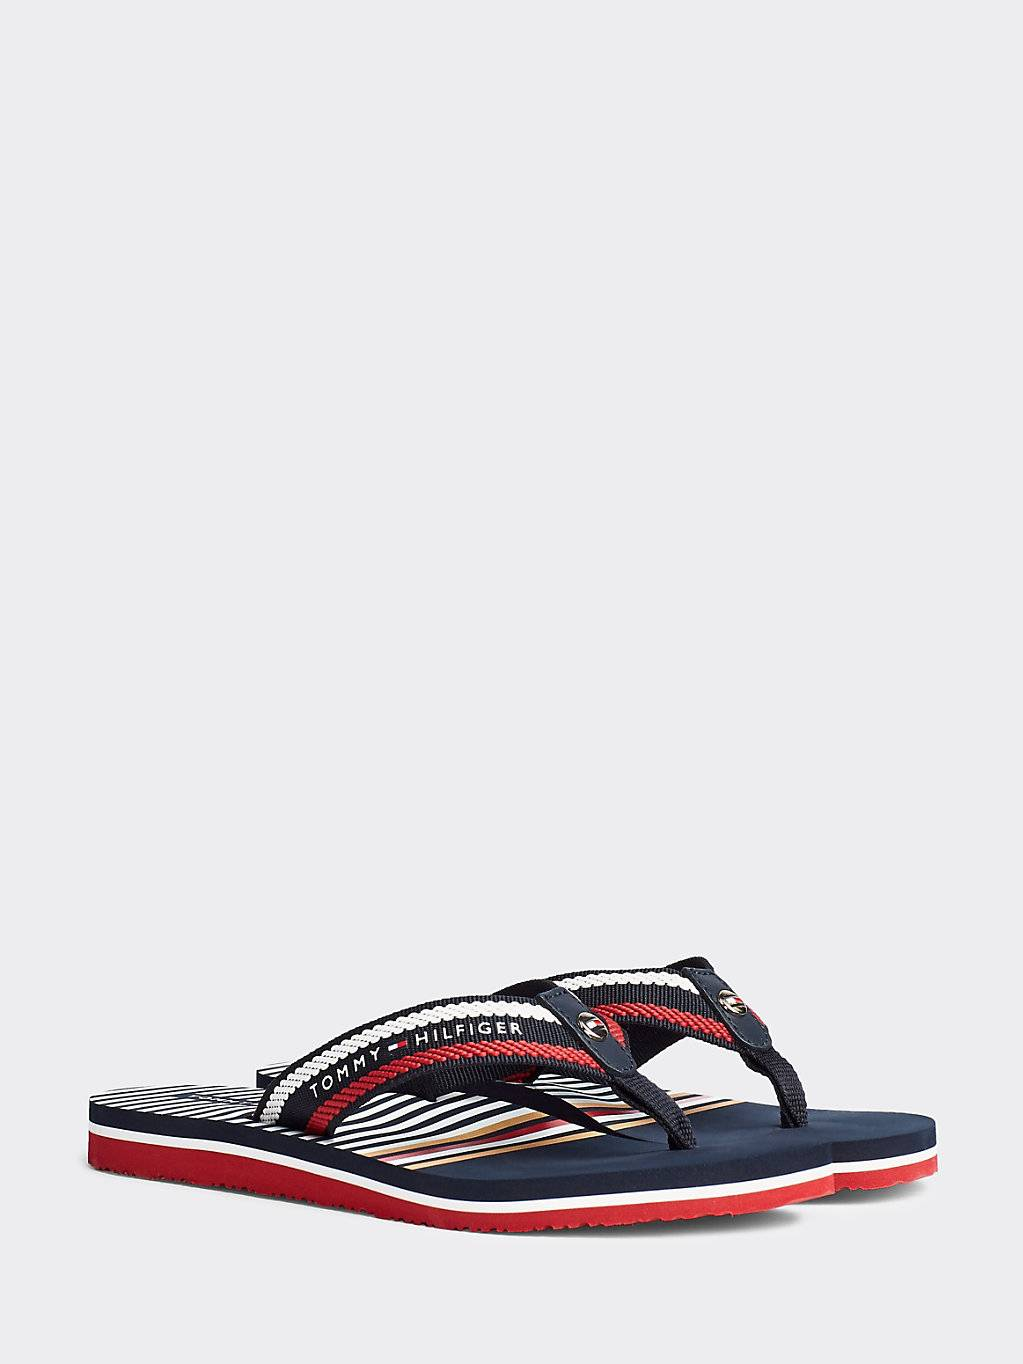 Tommy Hilfiger Signature Rope Embroidery Flip-Flops UK7.5